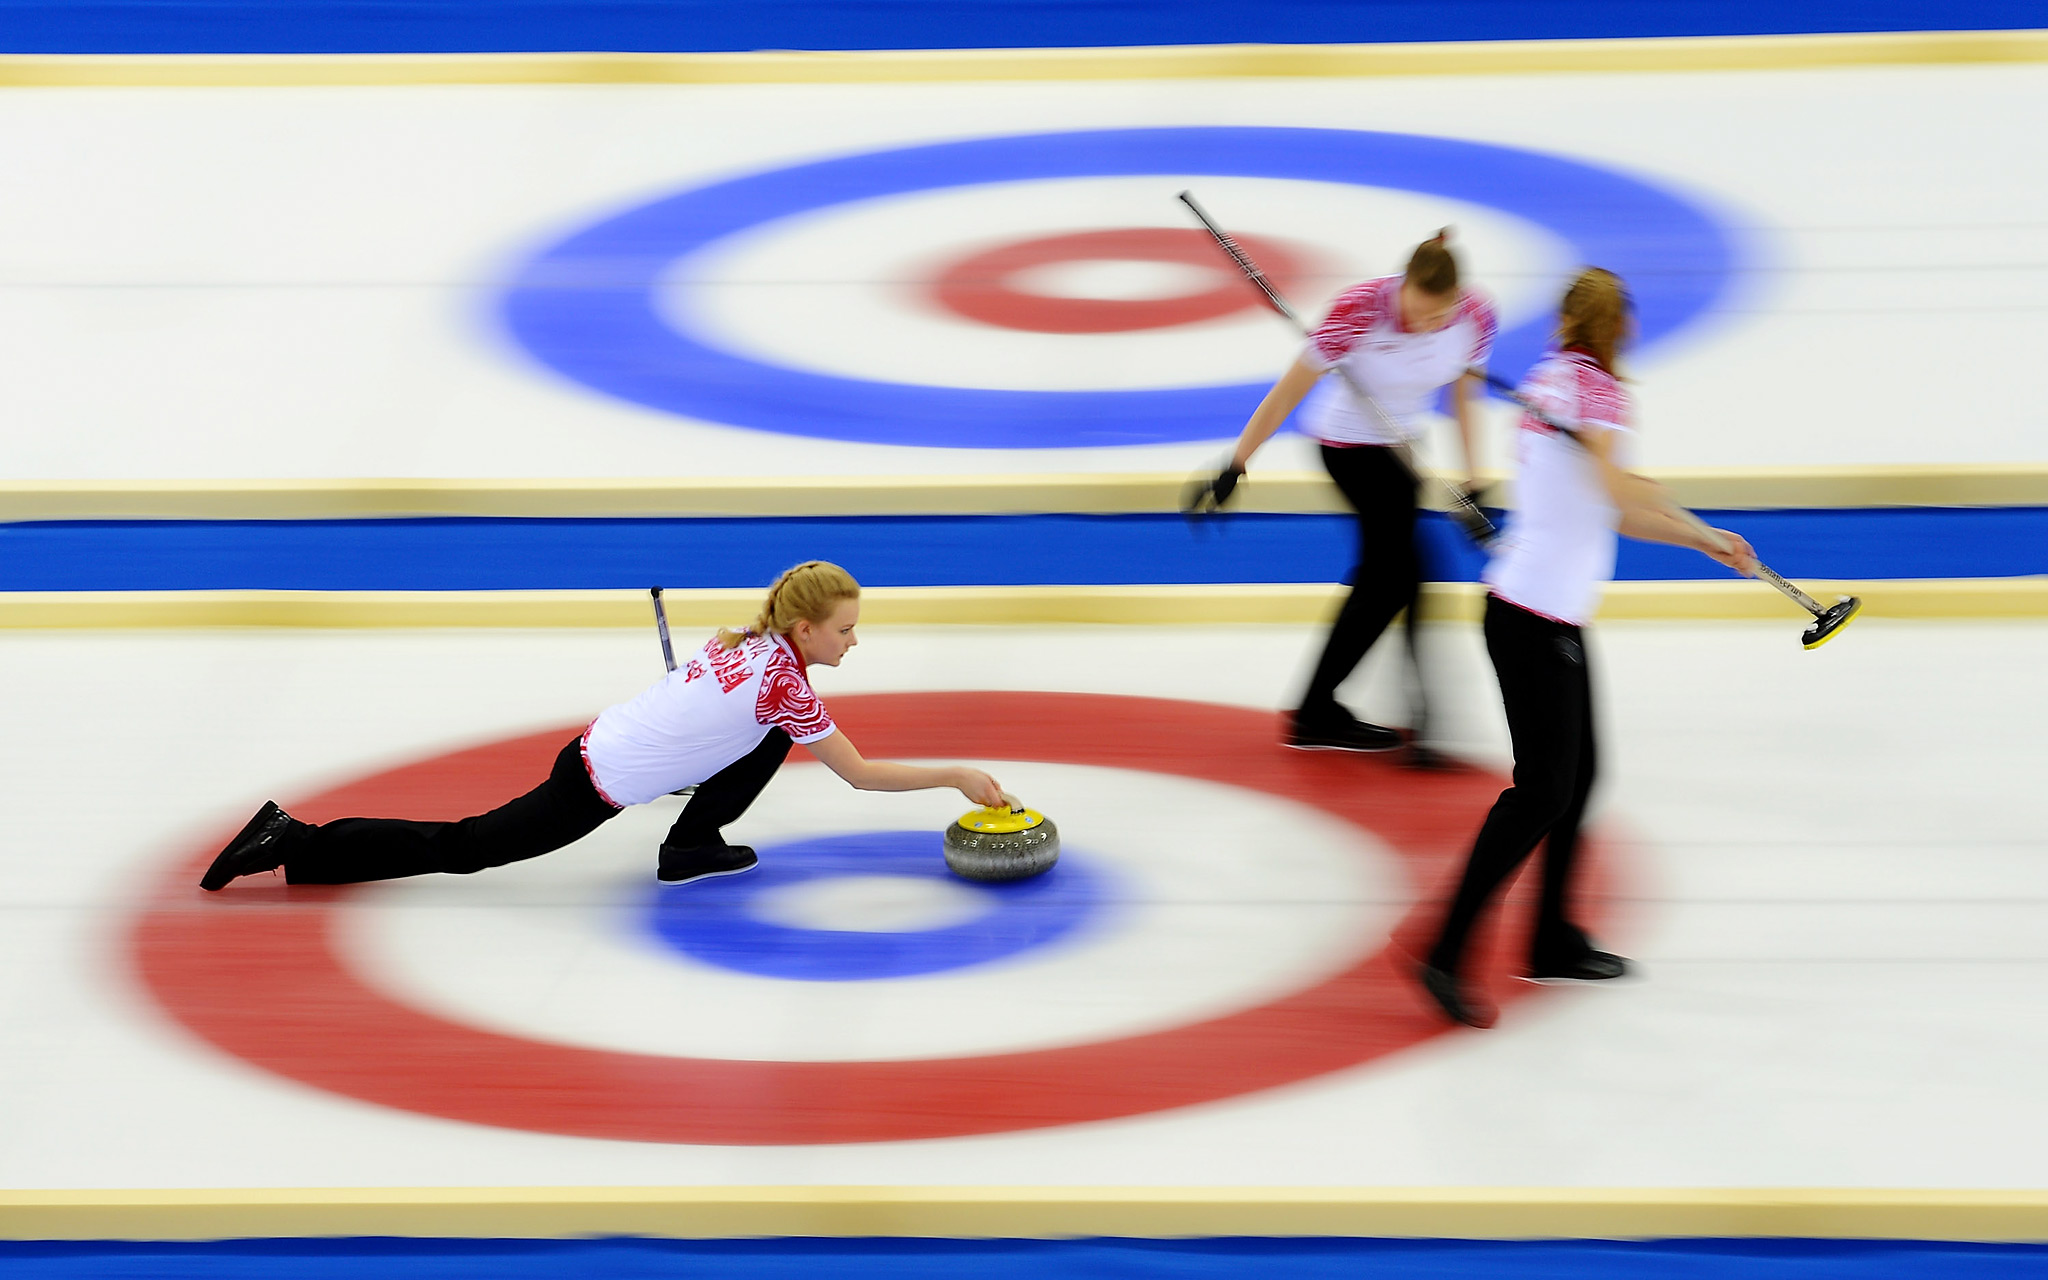 World Junior Curling Championships